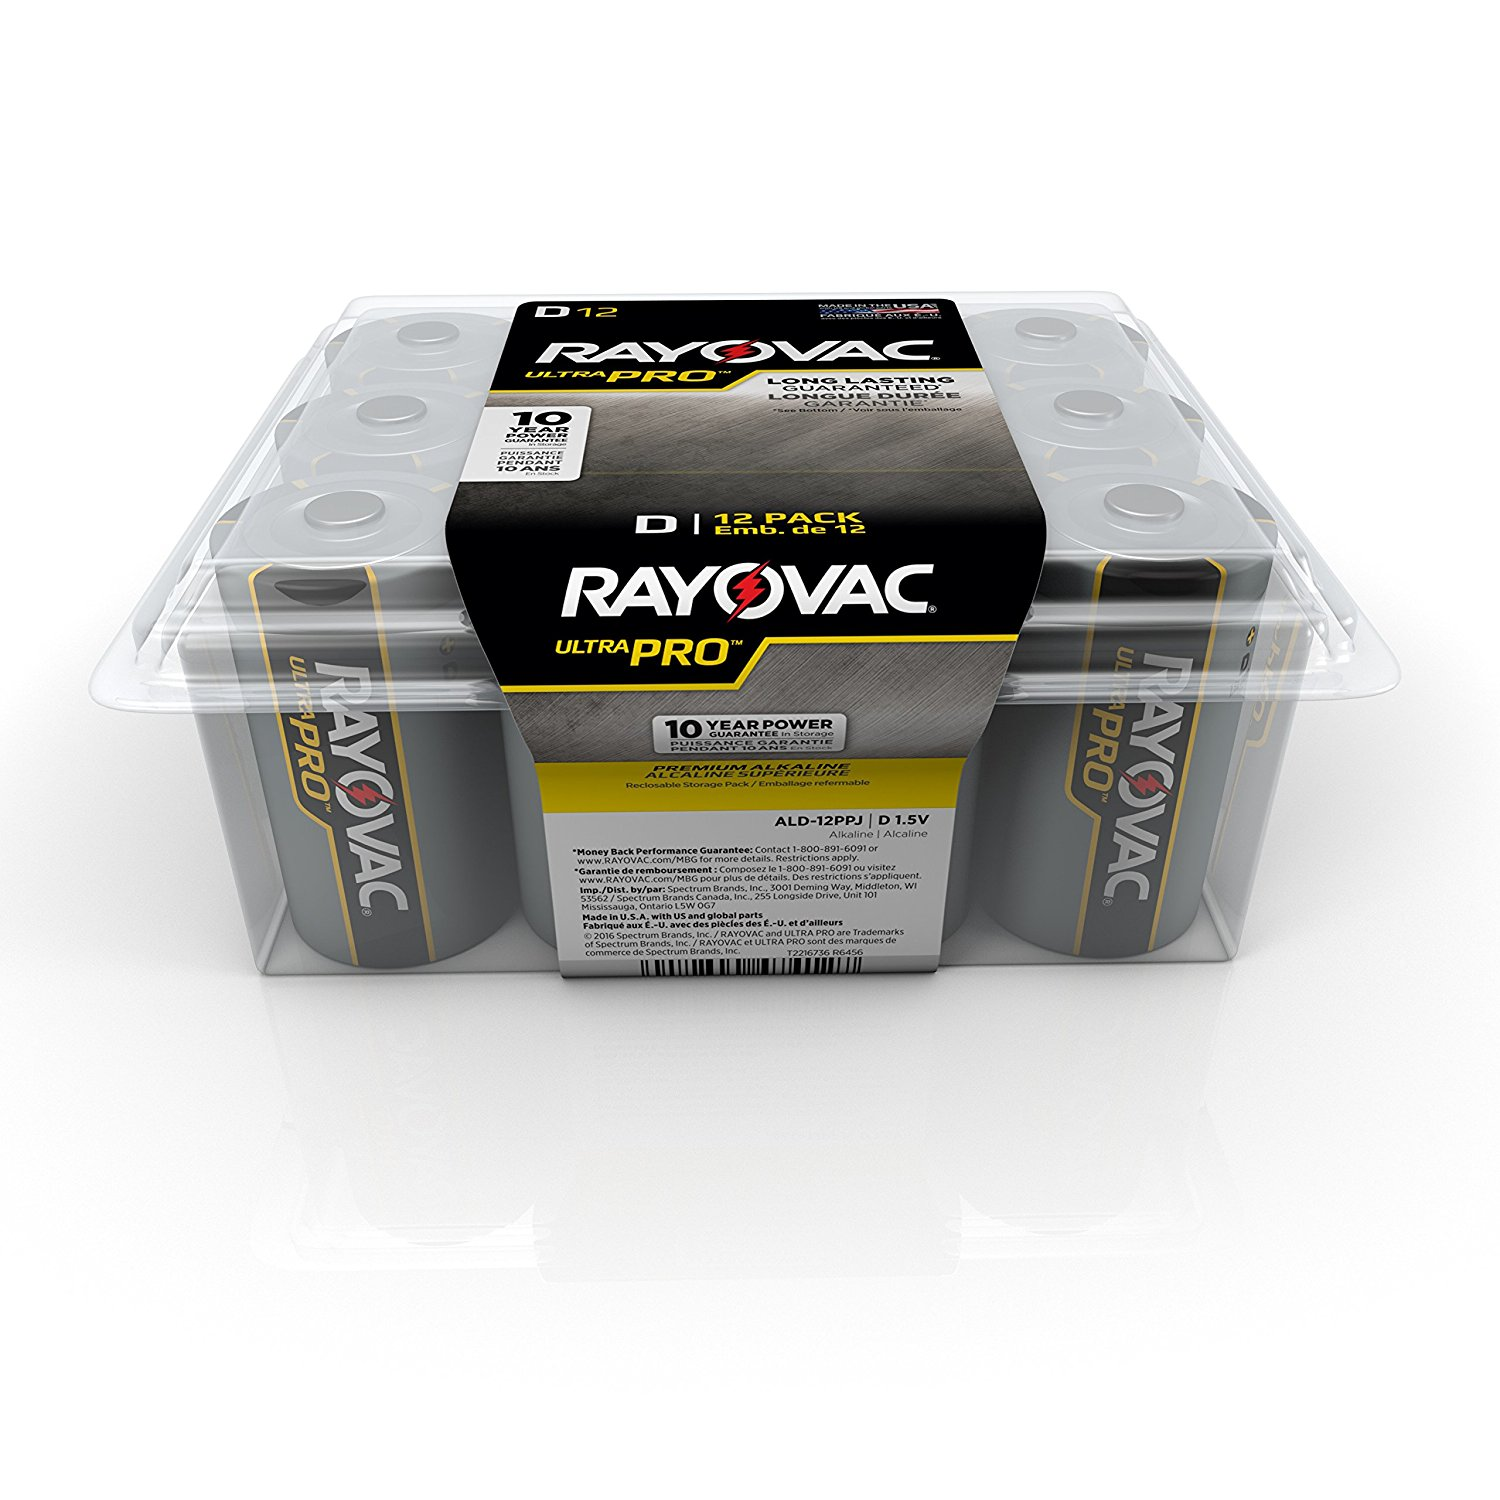 Rayovac Ultra Pro Alkaline D Batteries, 12 Count